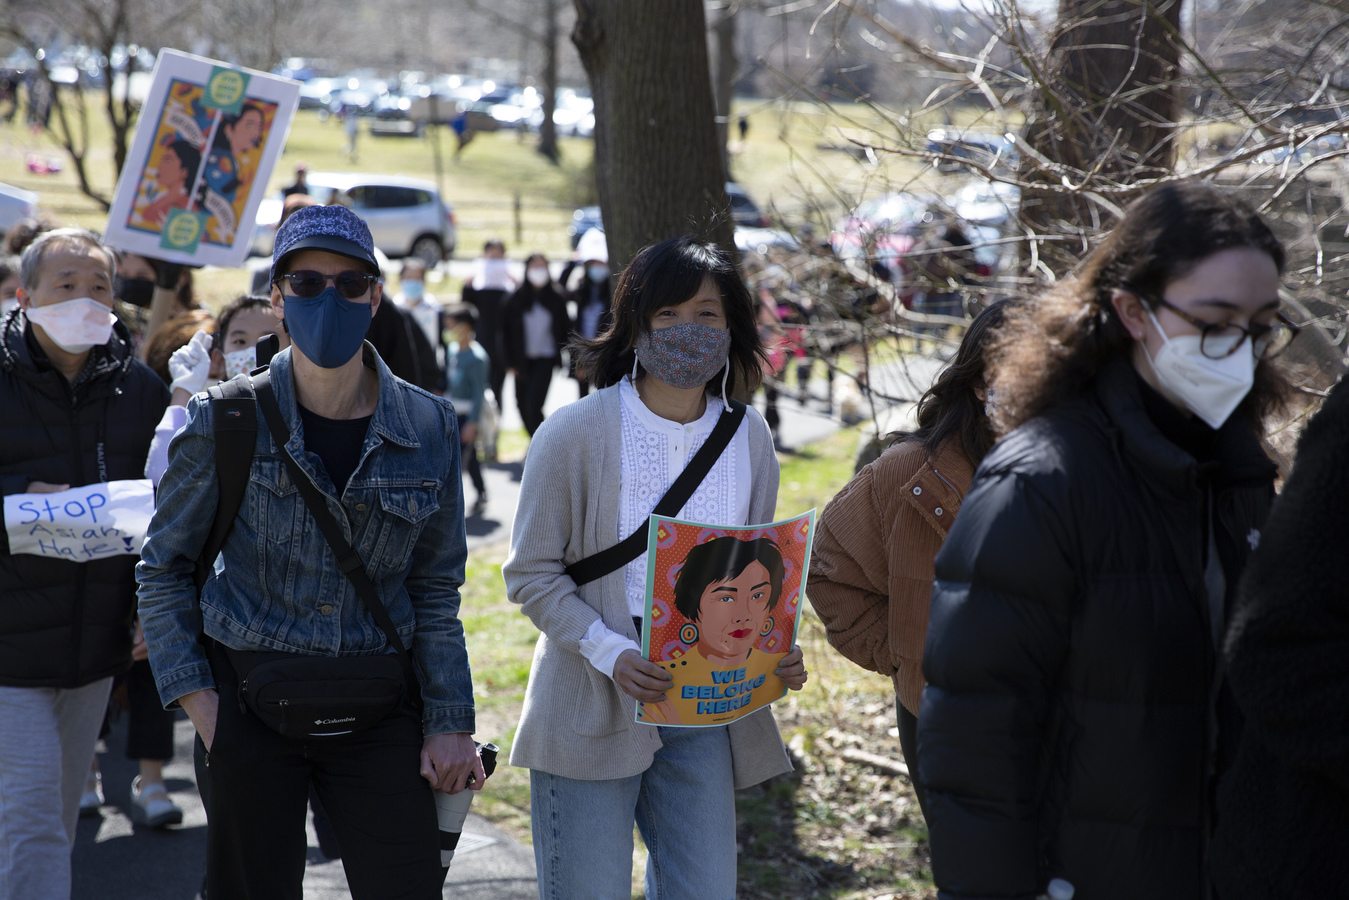 Rally & March For Asian Victims Of Violence Ardsley, NY 3/20/21